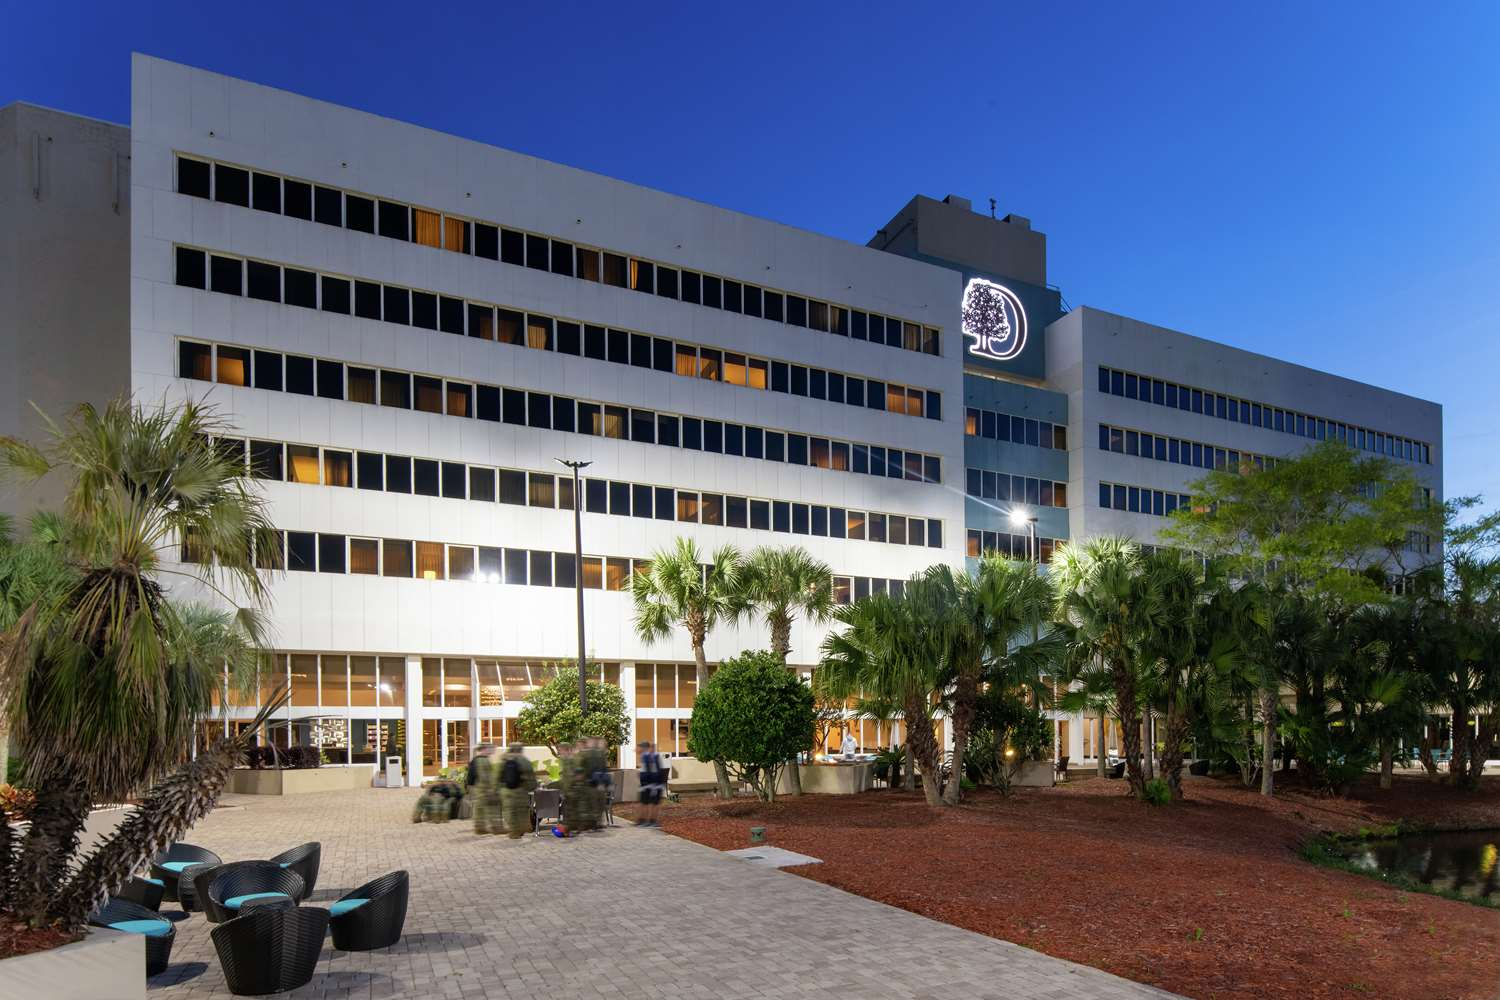 Meetings And Events At Doubletree By Hilton Hotel Jacksonville Airport Jacksonville Fl Us